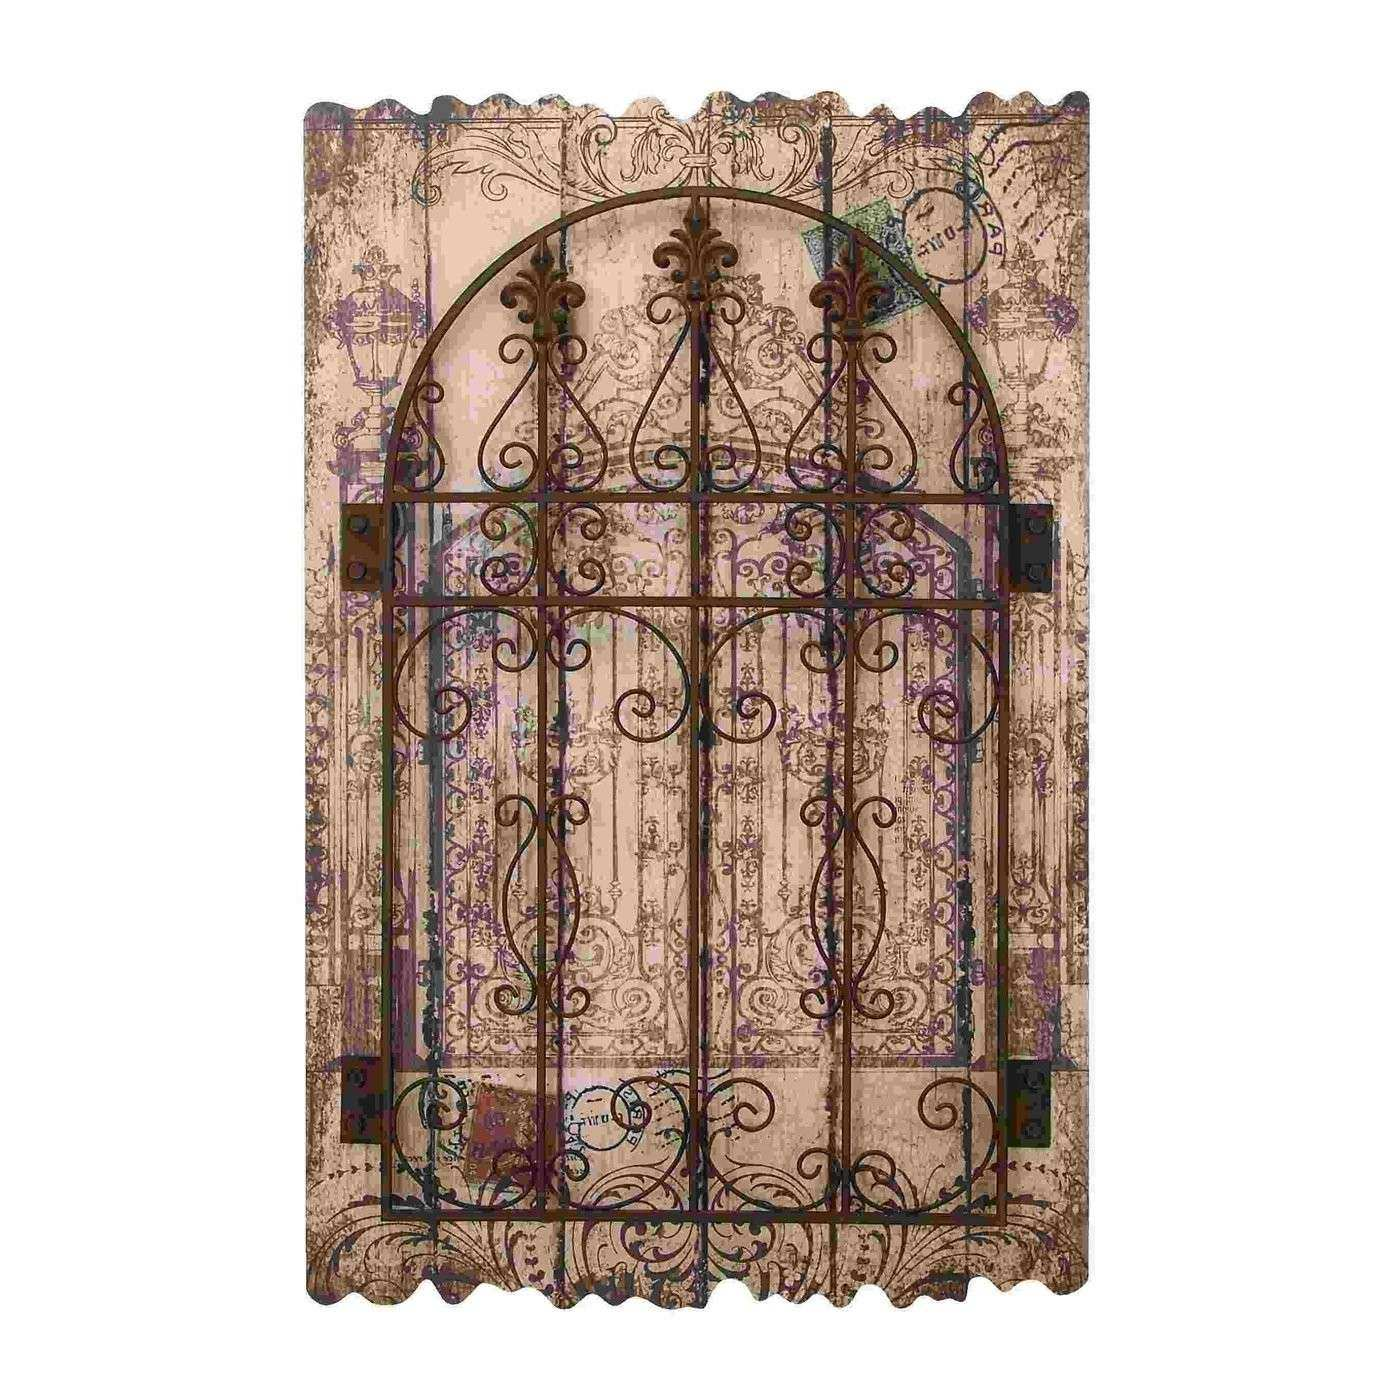 Home Design Superb Iron Wall Decor 7 Rustic Wood